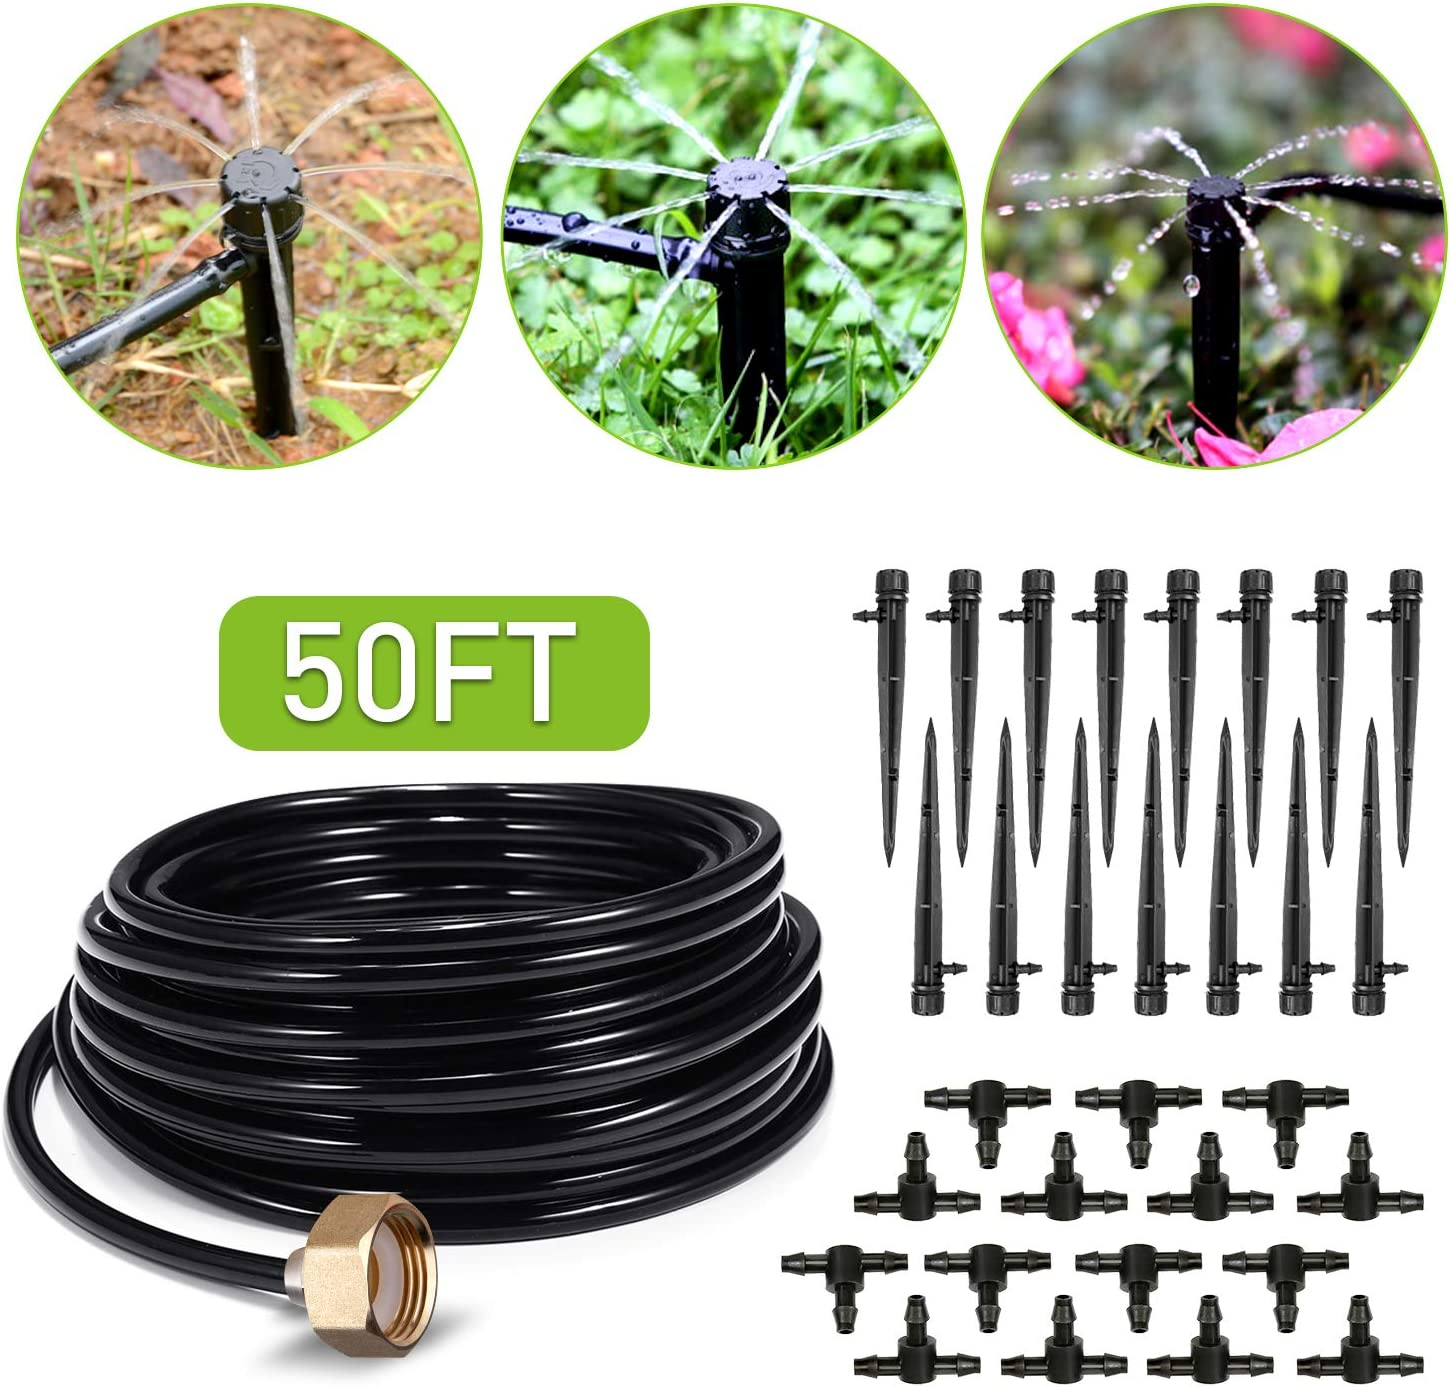 HIRALIY 50ft Drip Irrigation Kit Plant Watering System 8x5mm Blank Distribution Tubing DIY Automatic Irrigation Equipment Set for Garden Greenhouse Flower Bed Patio Lawn : Garden & Outdoor